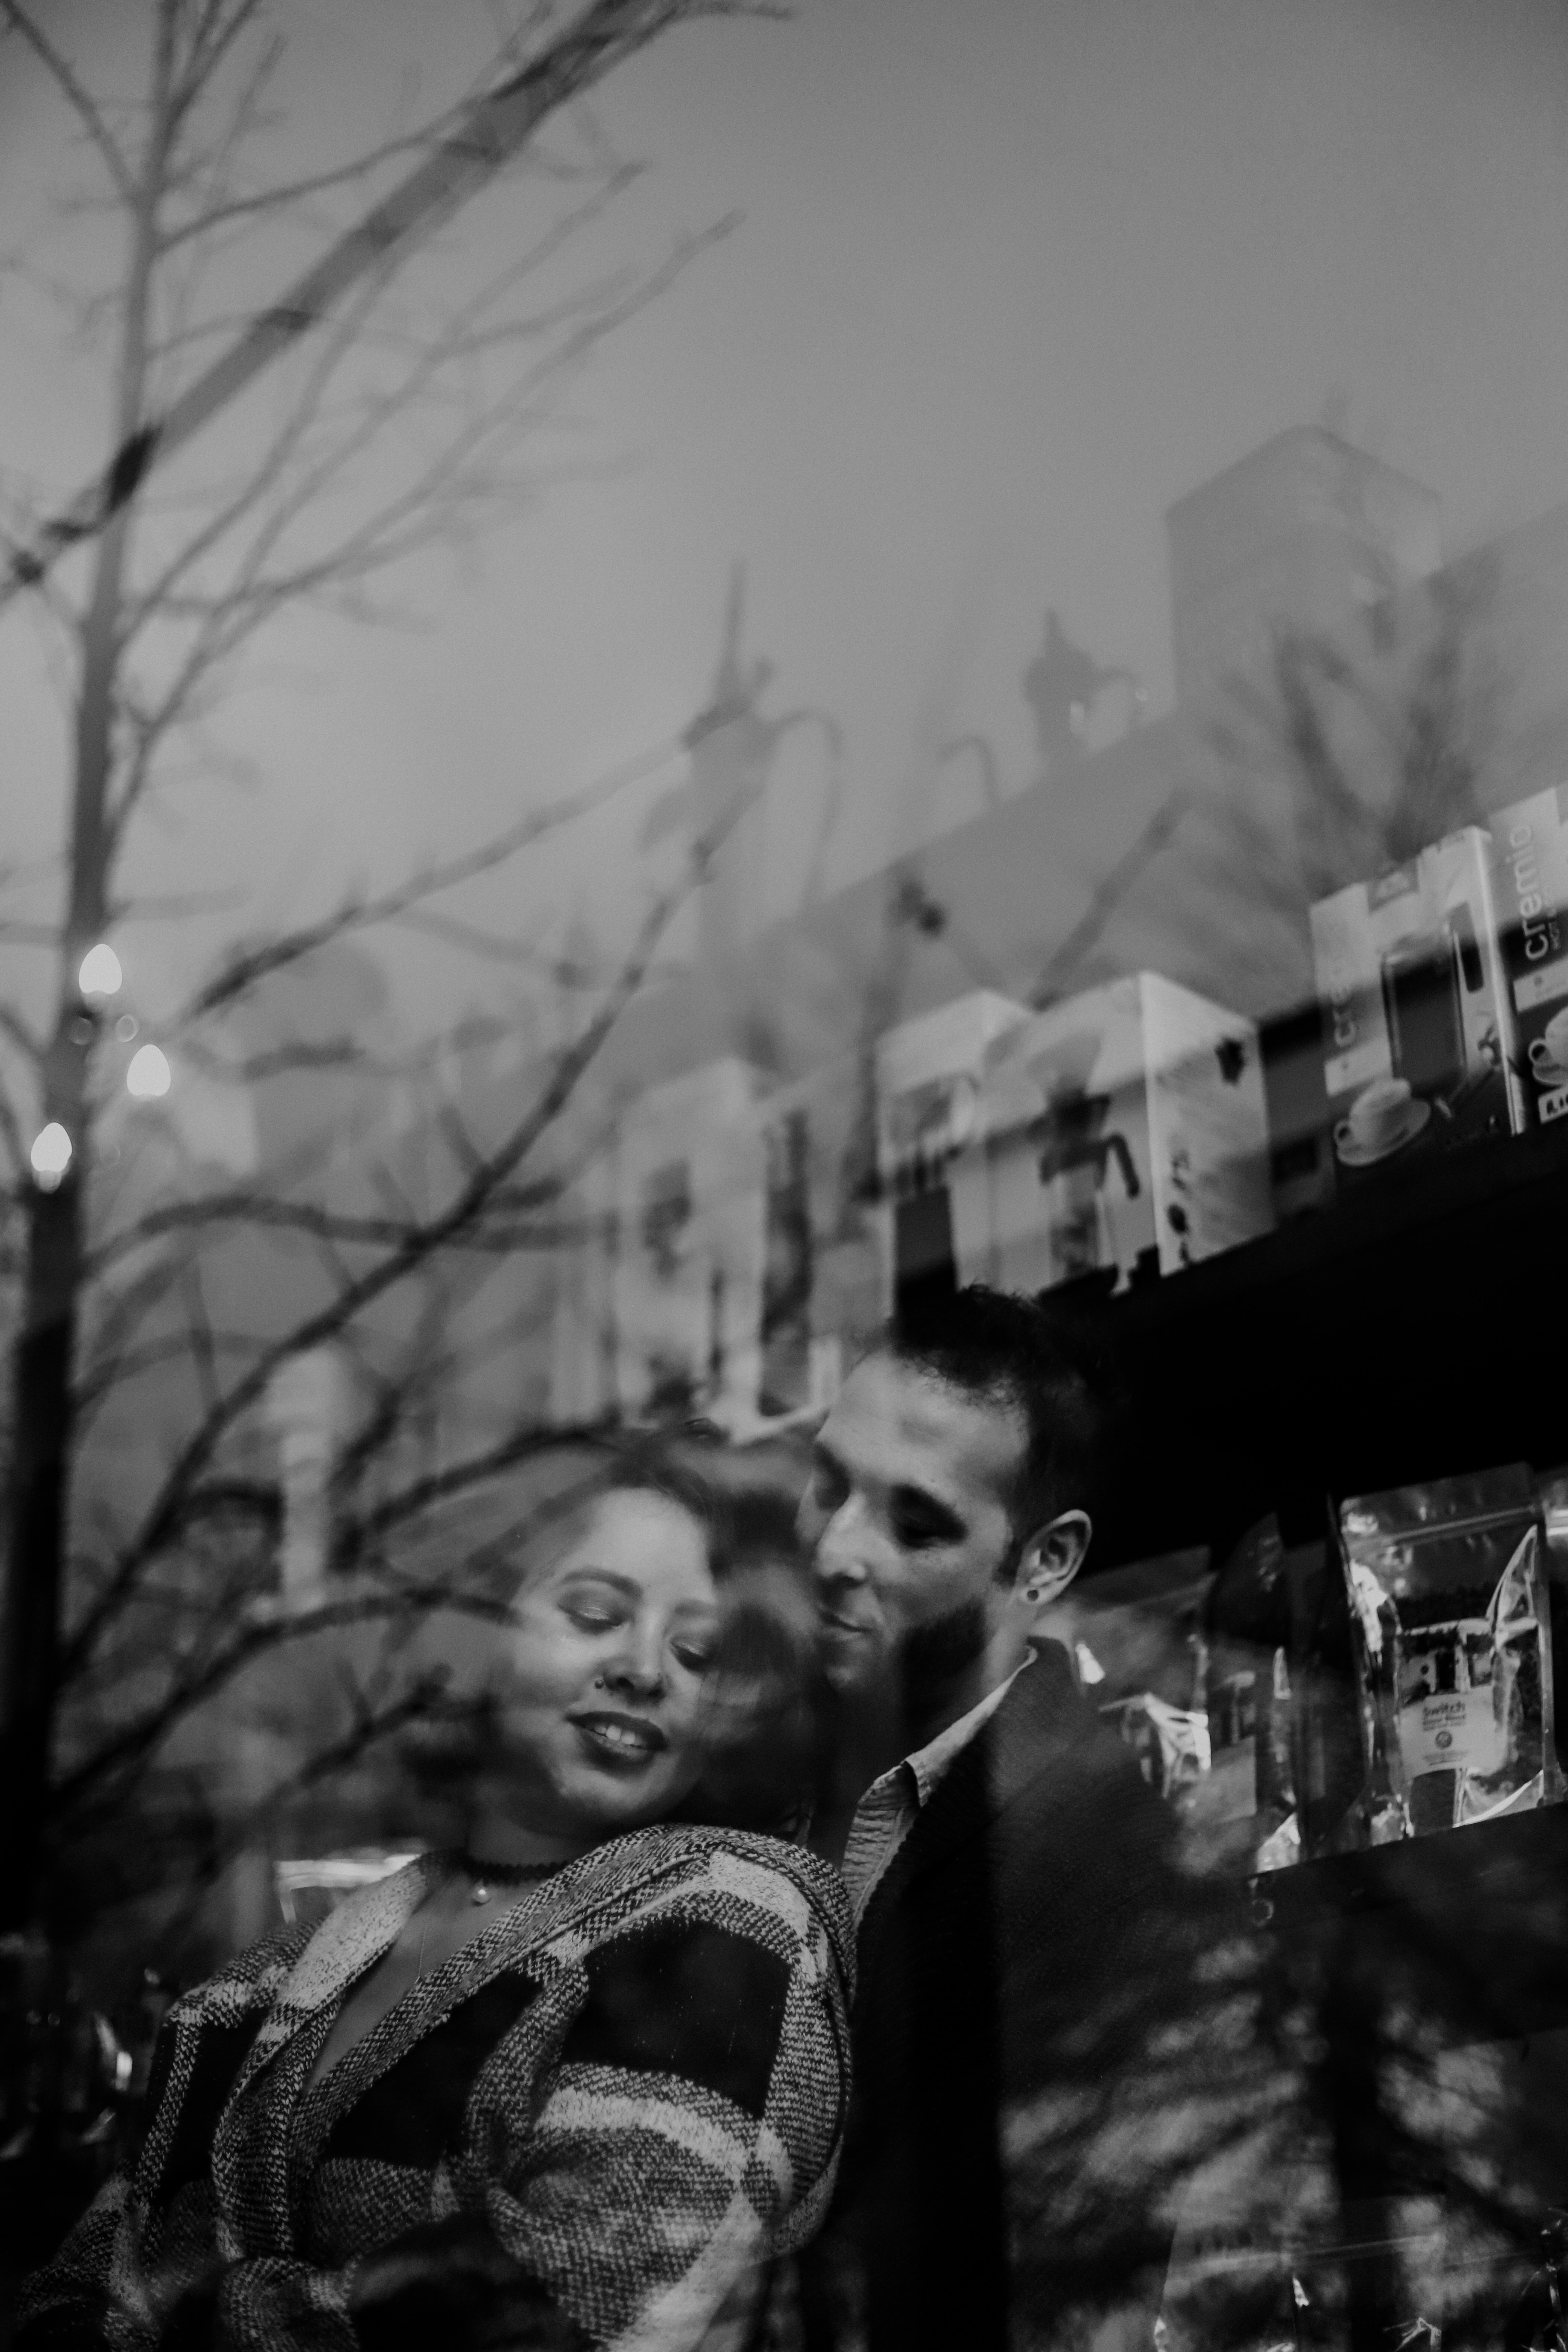 male holding woman from the back grayscale photo